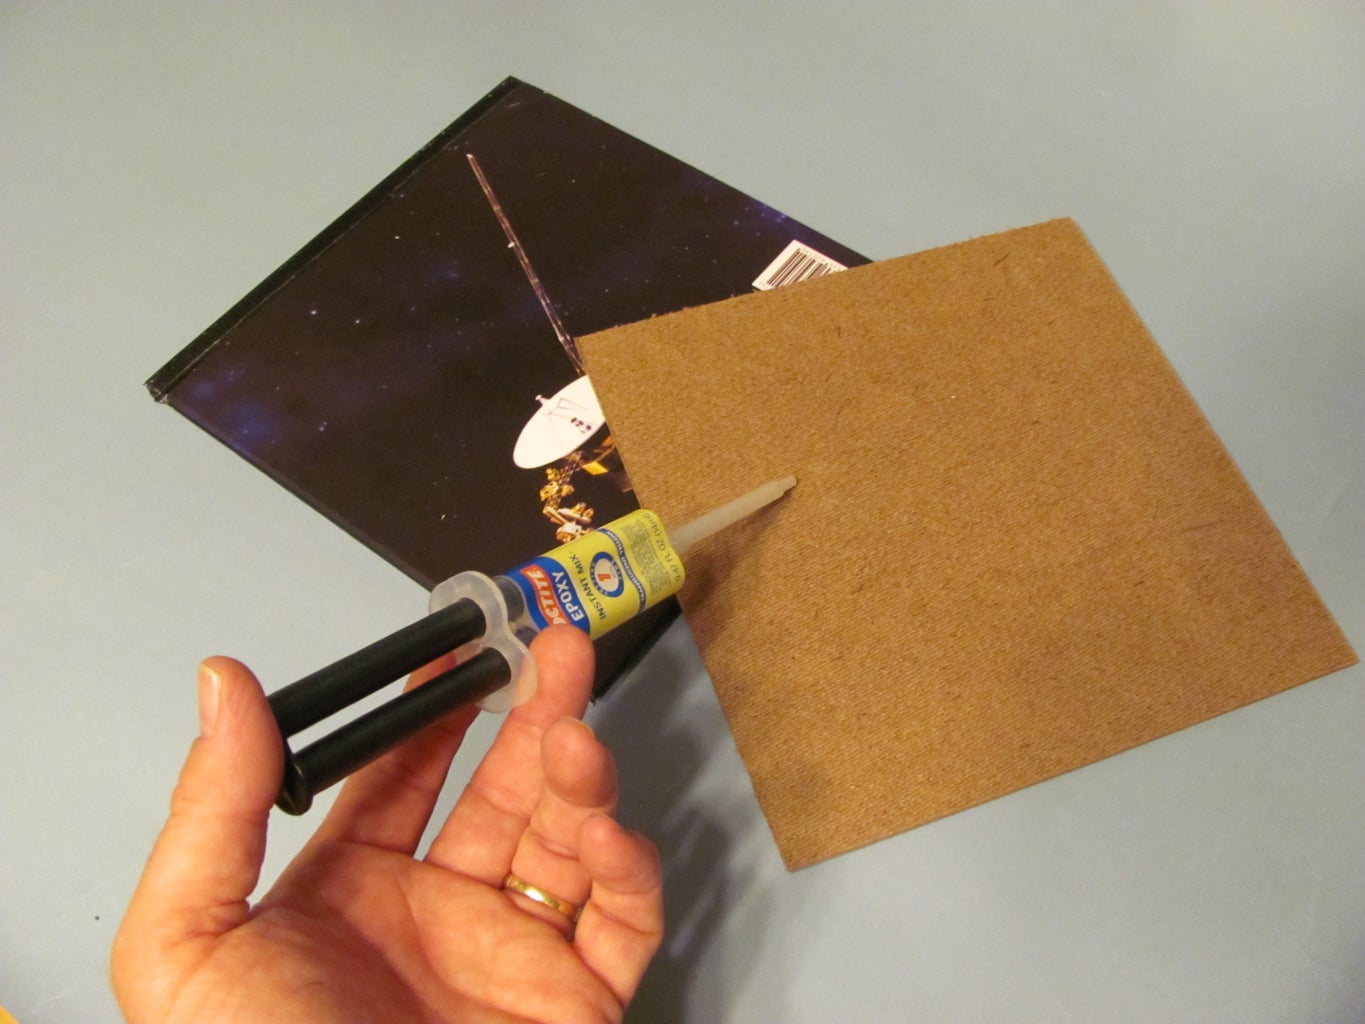 Glue the Hard Board to the Back of the Book